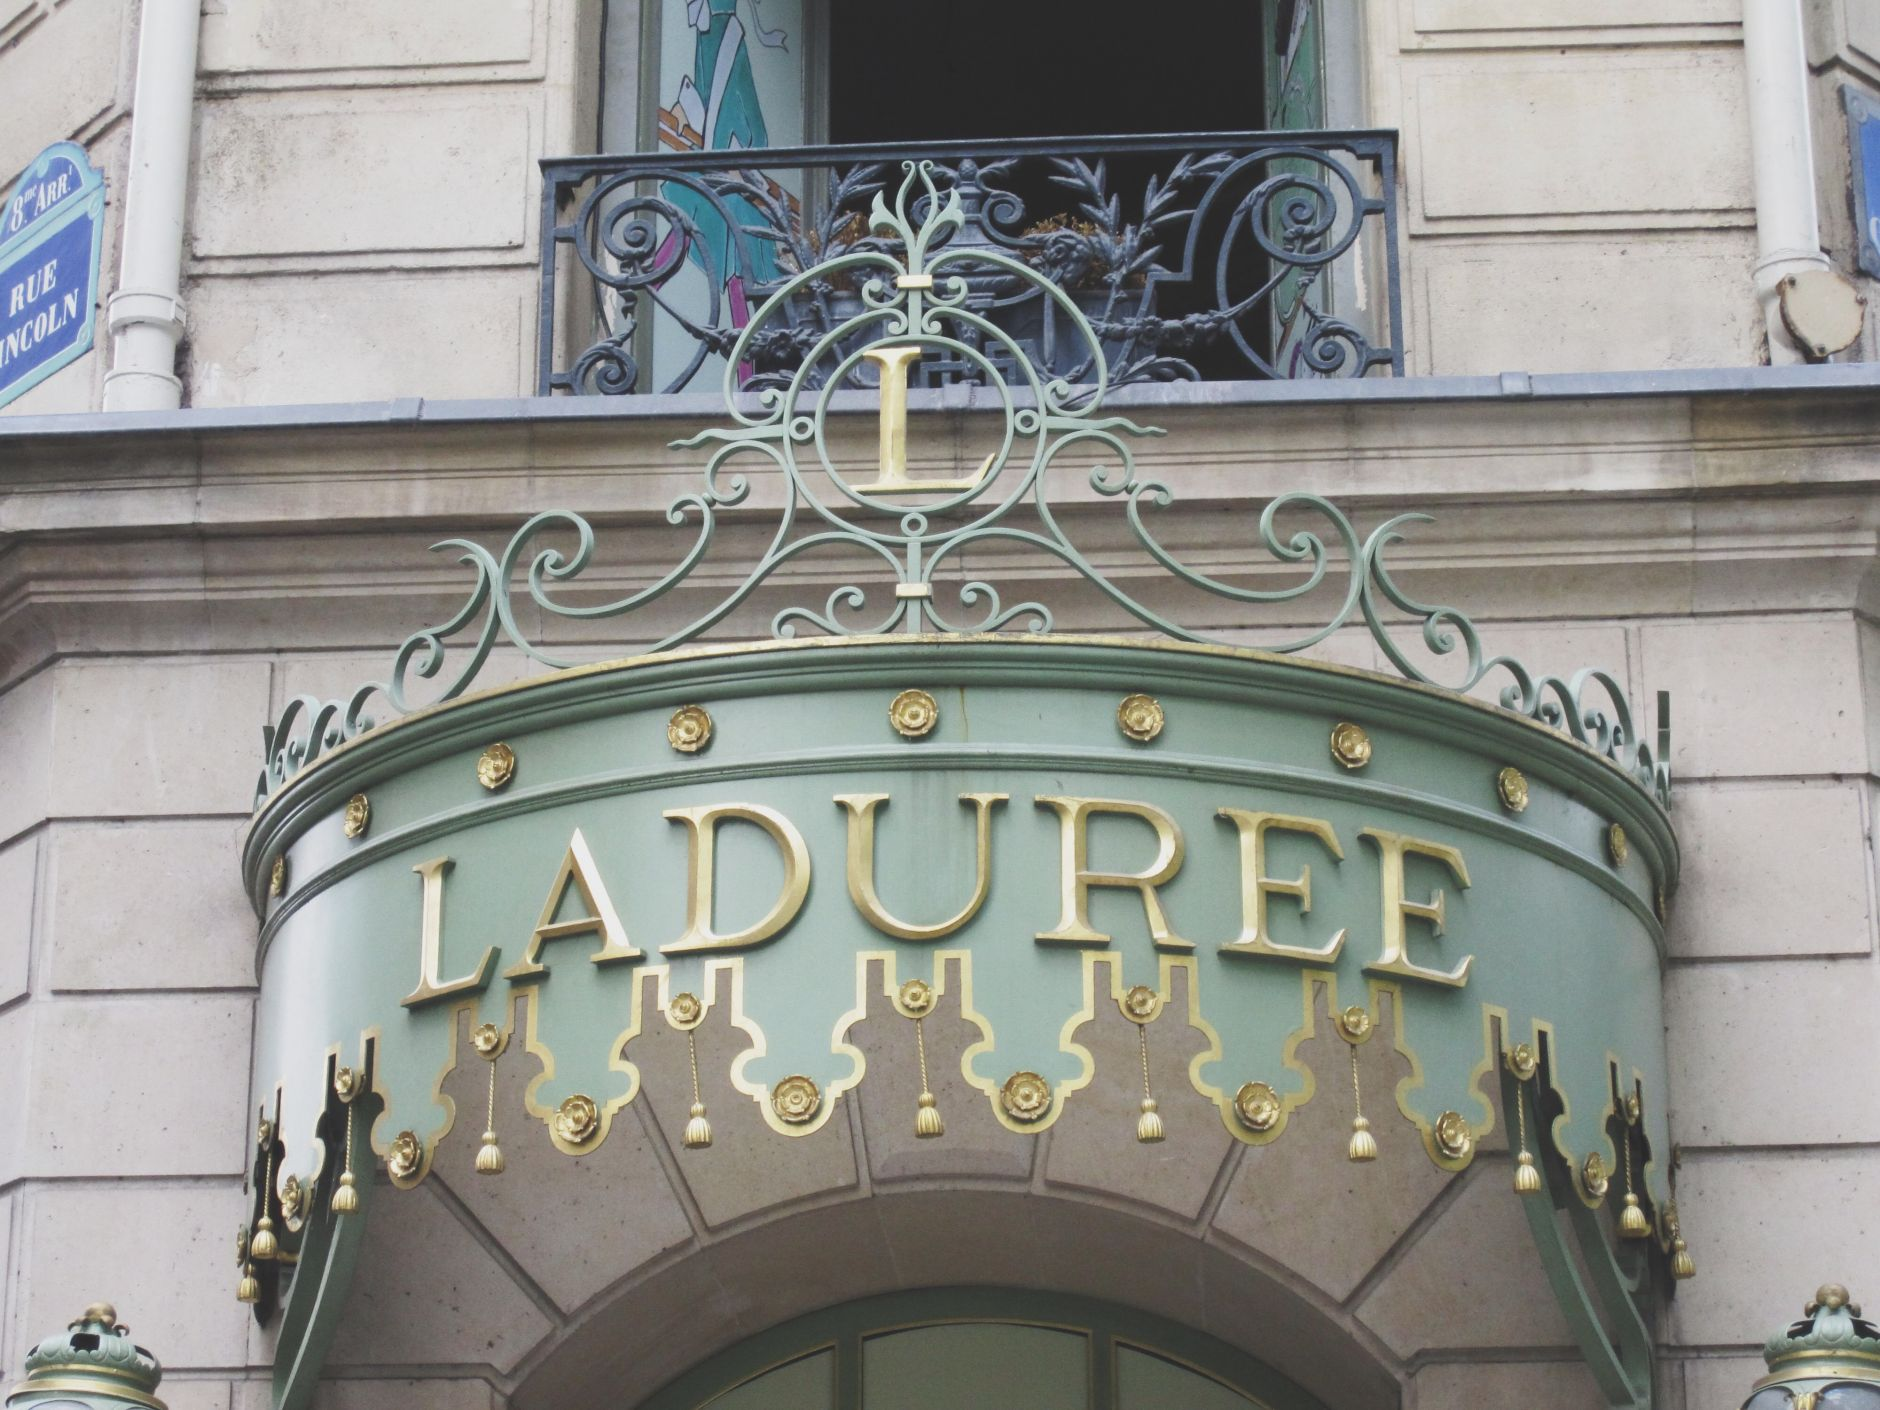 champs-élysées-paris-france-laduree-disi-couture-01